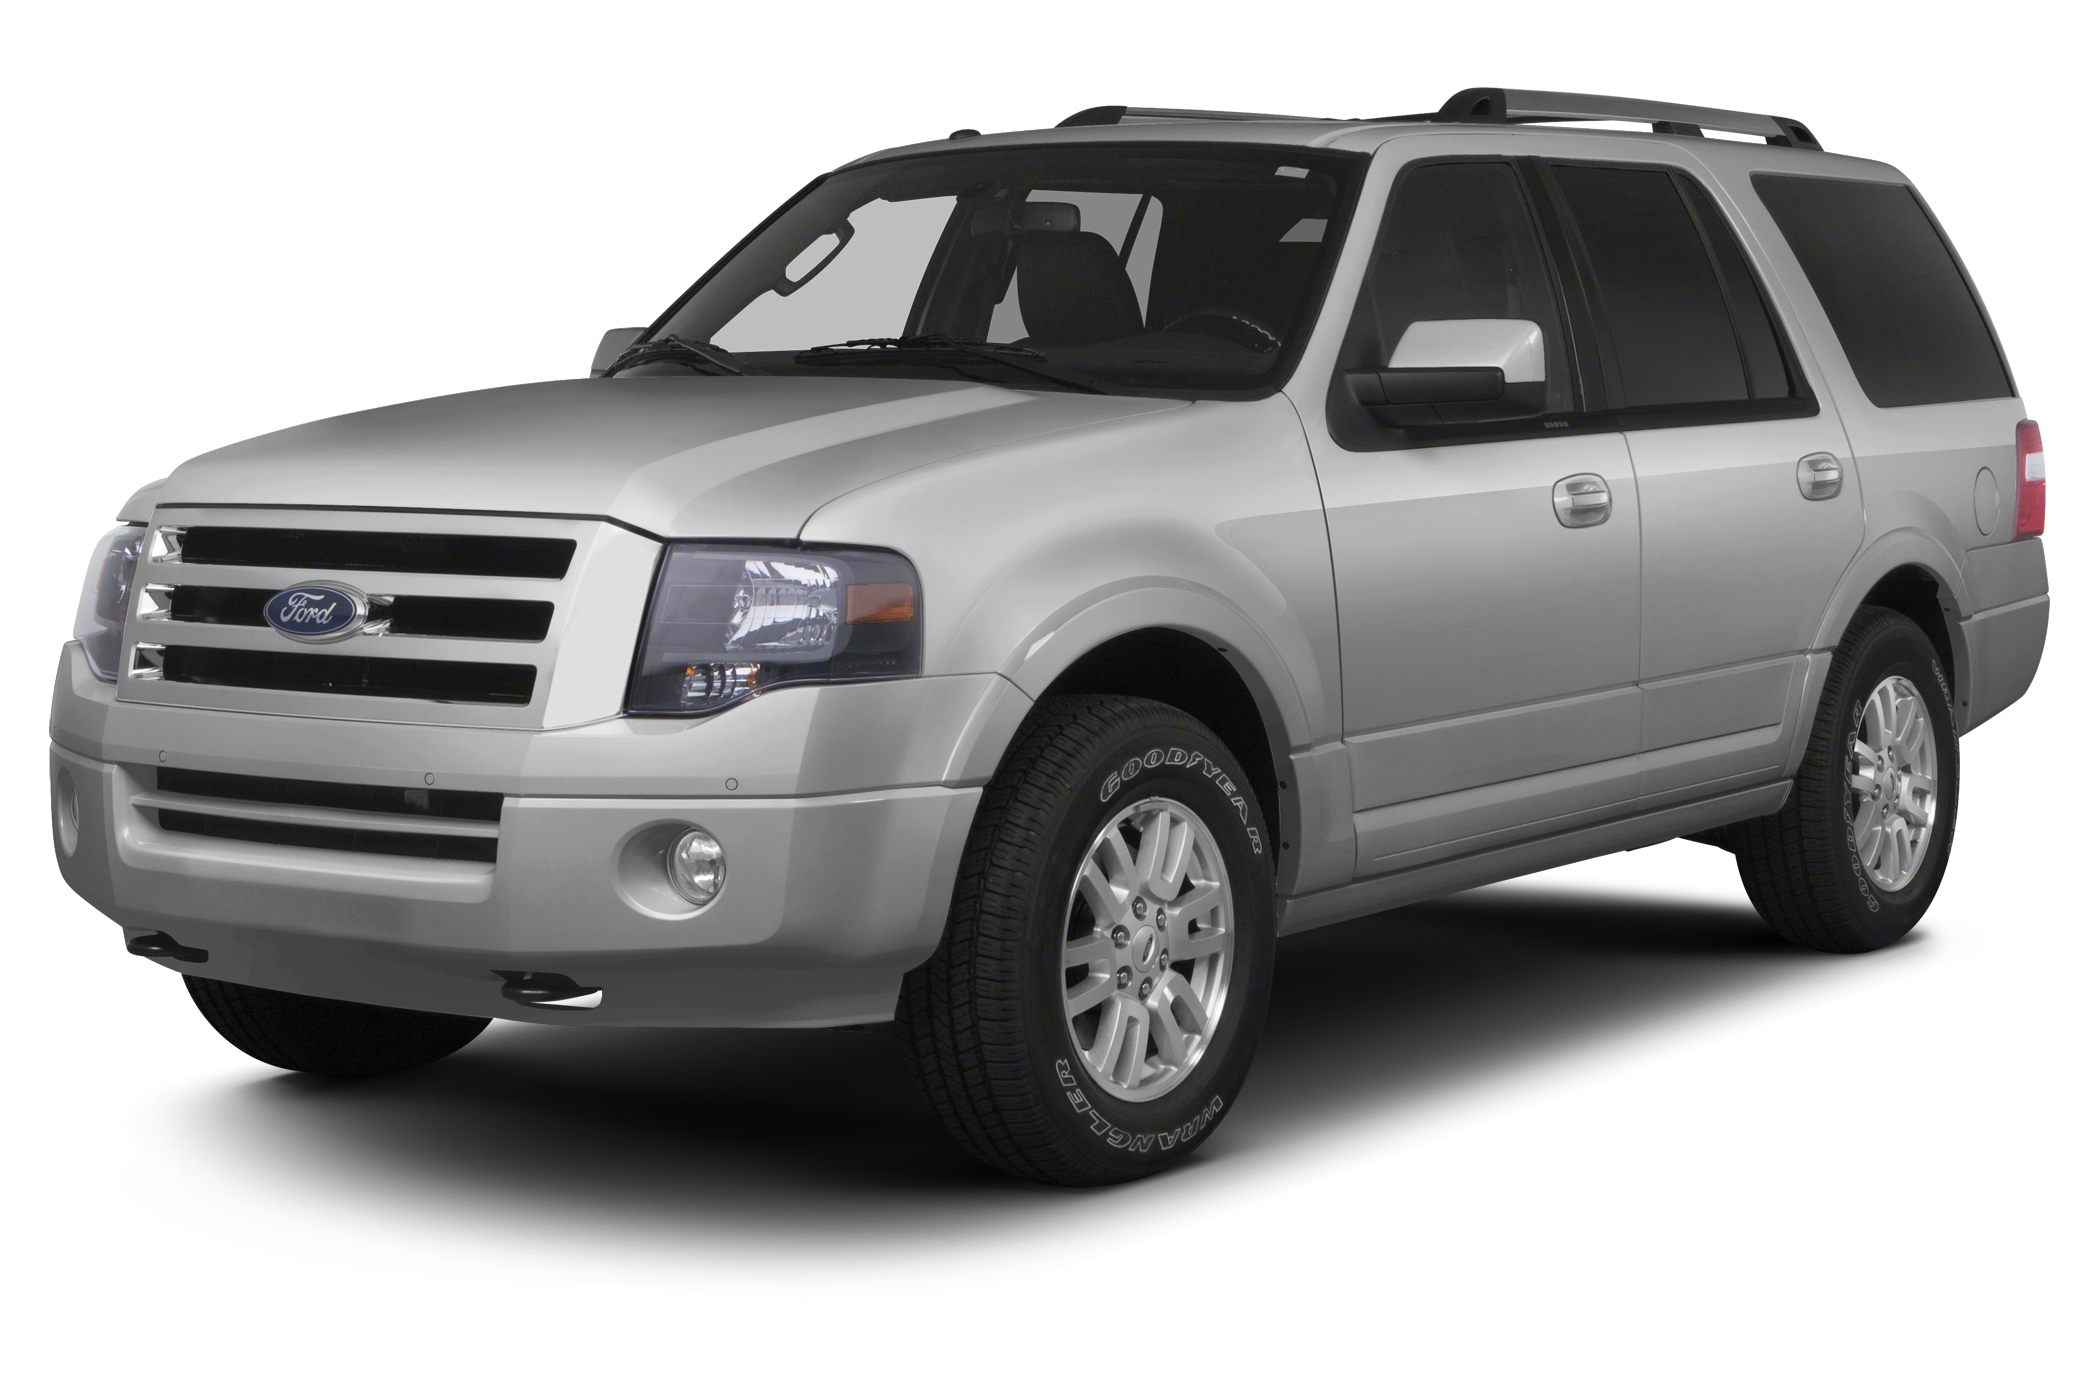 USC30FOS302C021001 Cool Review About 2000 ford Expedition Mpg